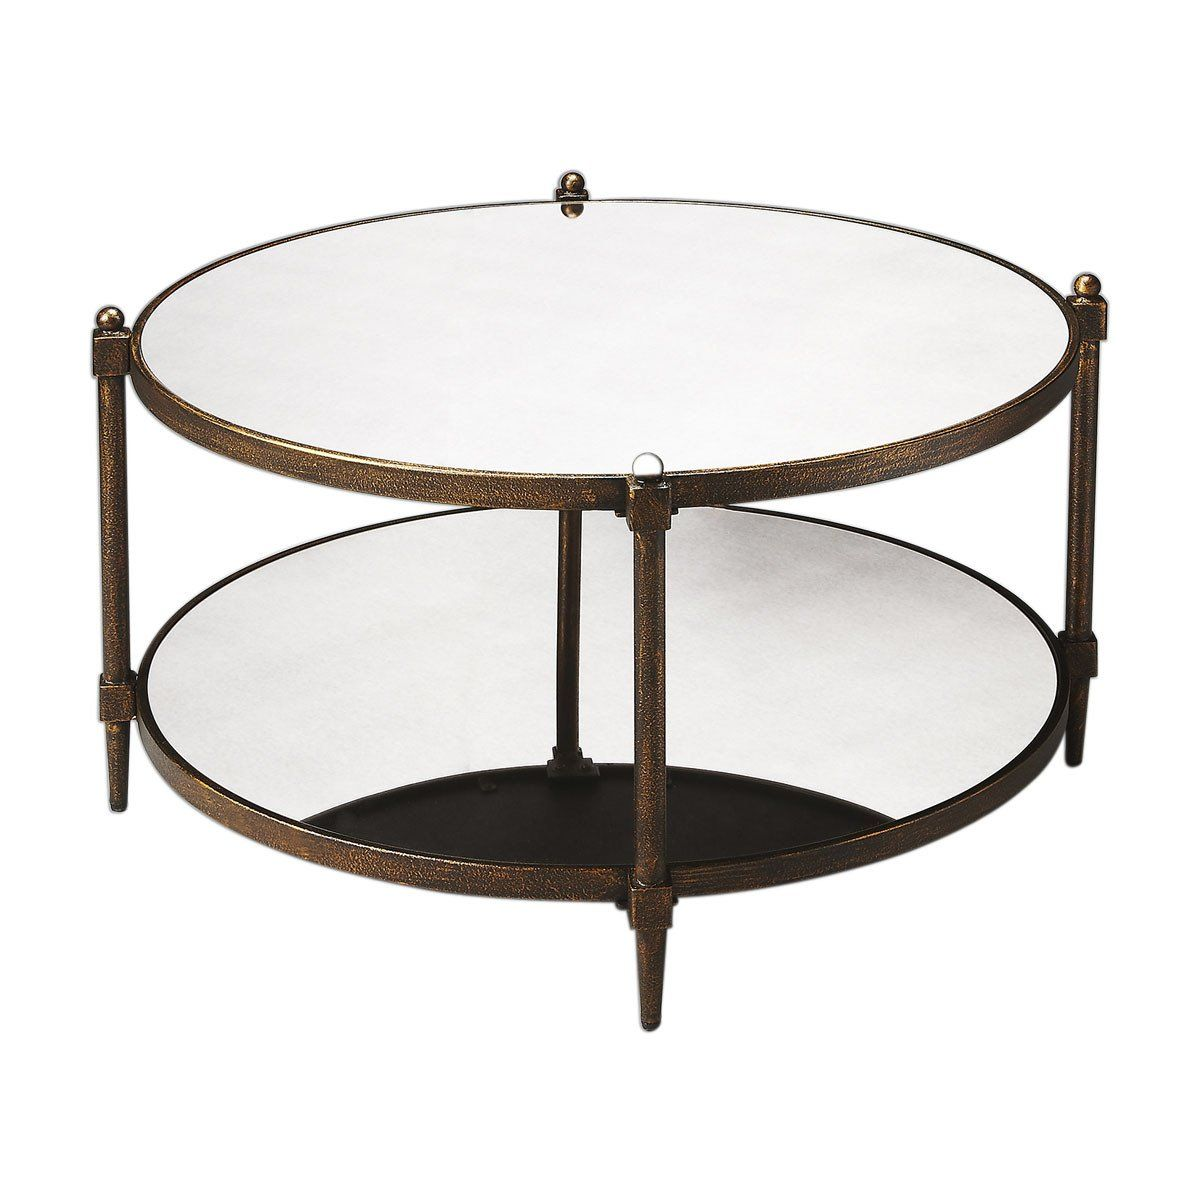 Butler Home Decor Cocktail Table Finish Type Light Metalworks Mirrored Coffee Tables Bronze Coffee Table Living Room Coffee Table [ 1200 x 1200 Pixel ]